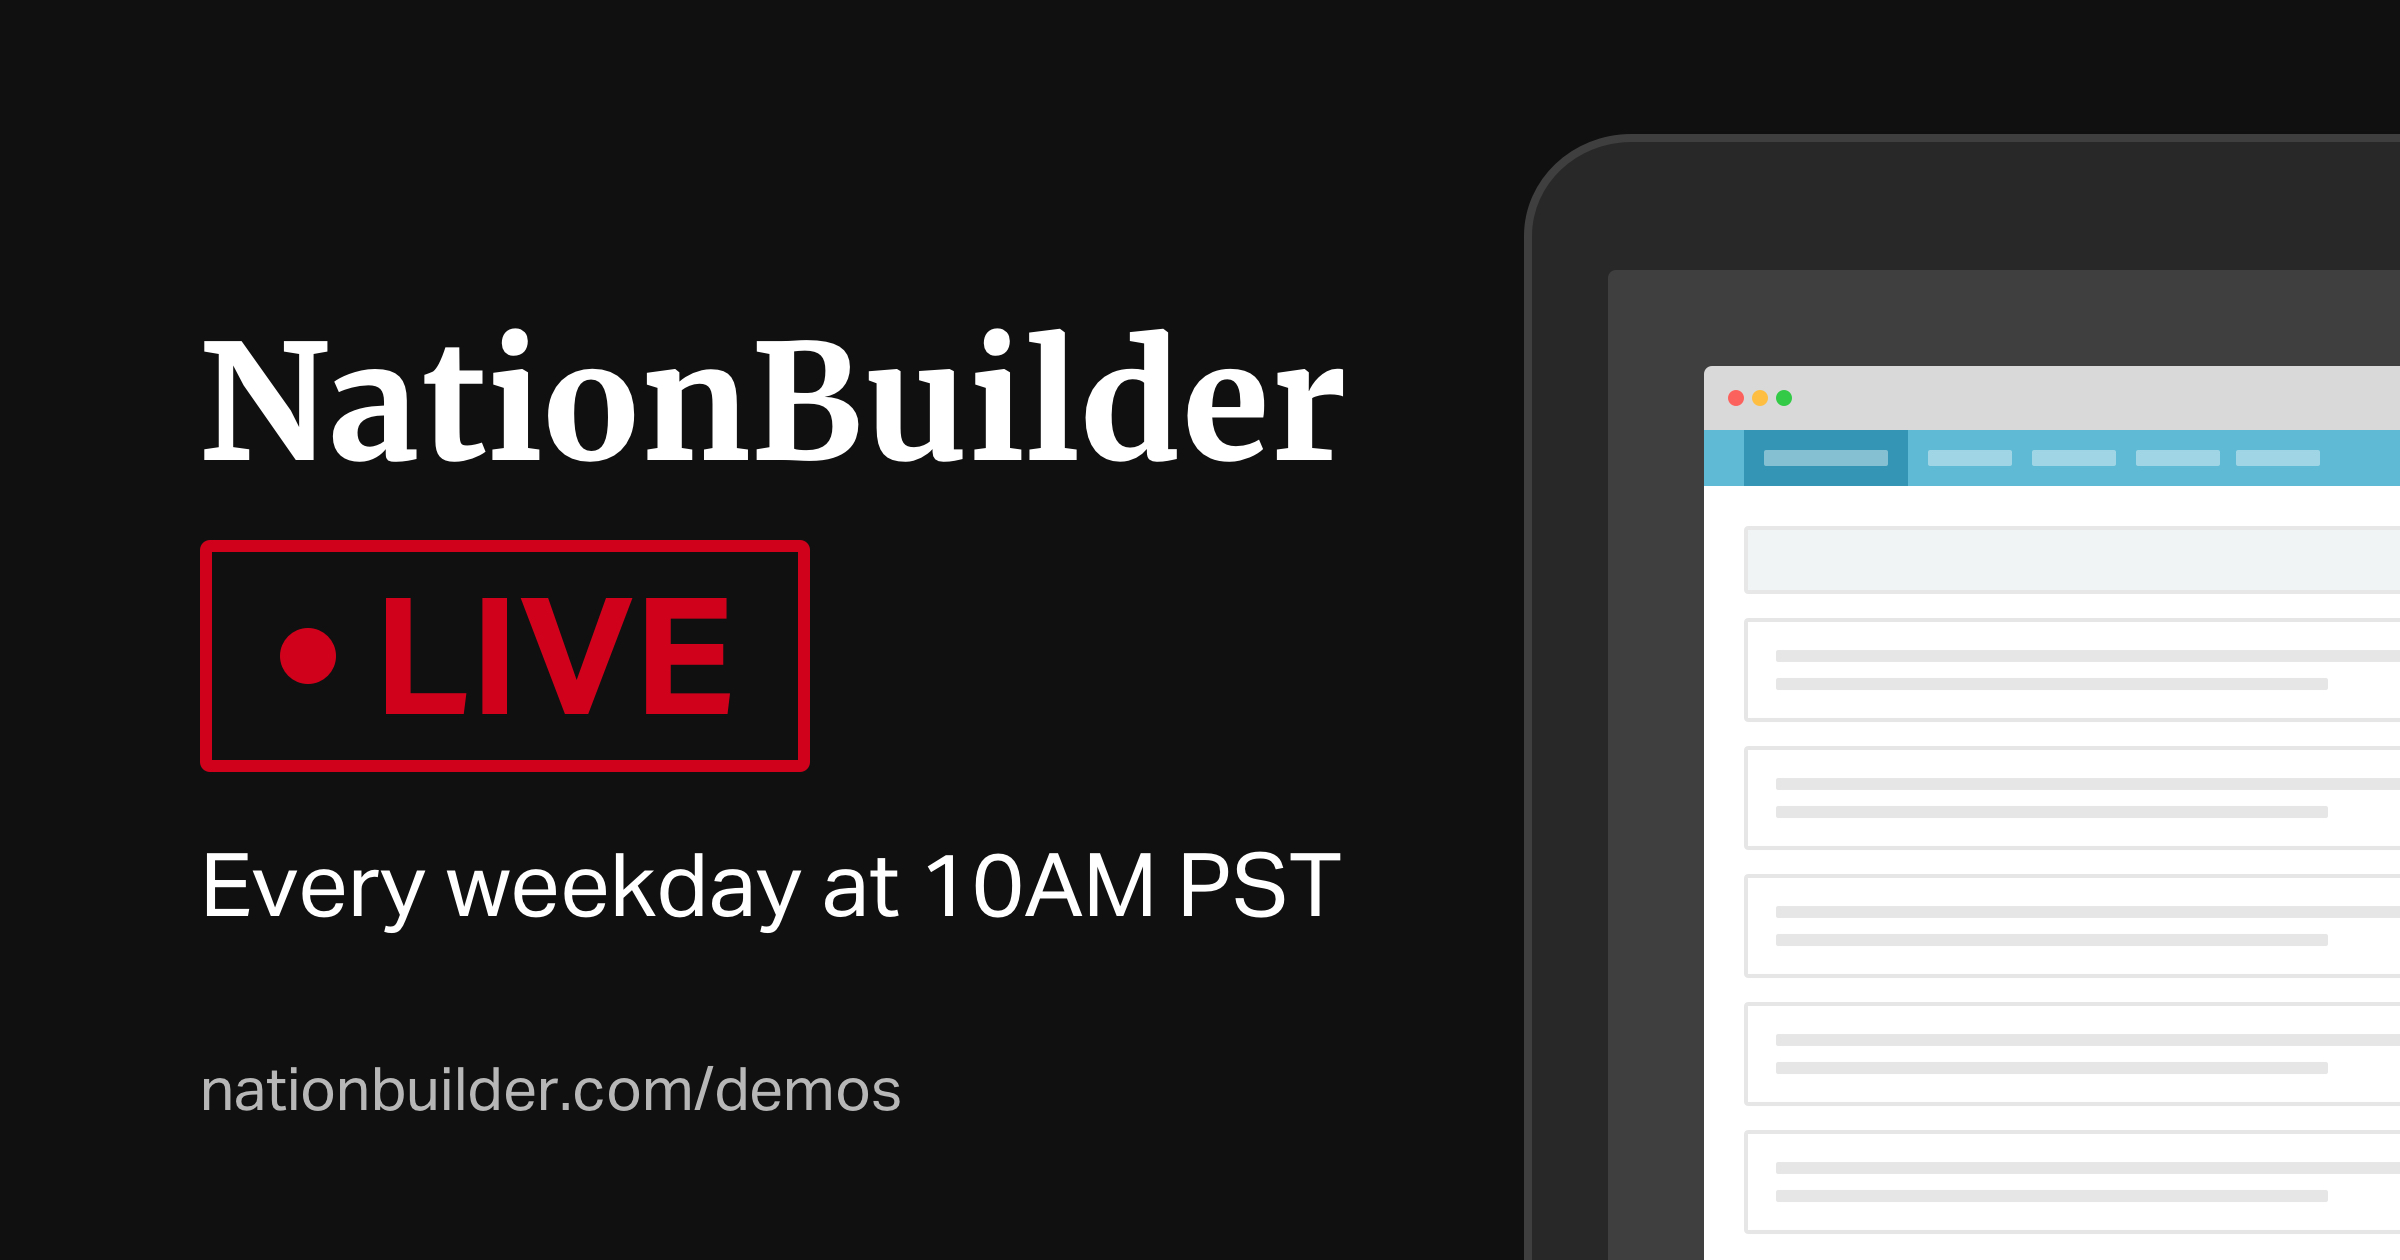 NationBuilder Live! - Links to save